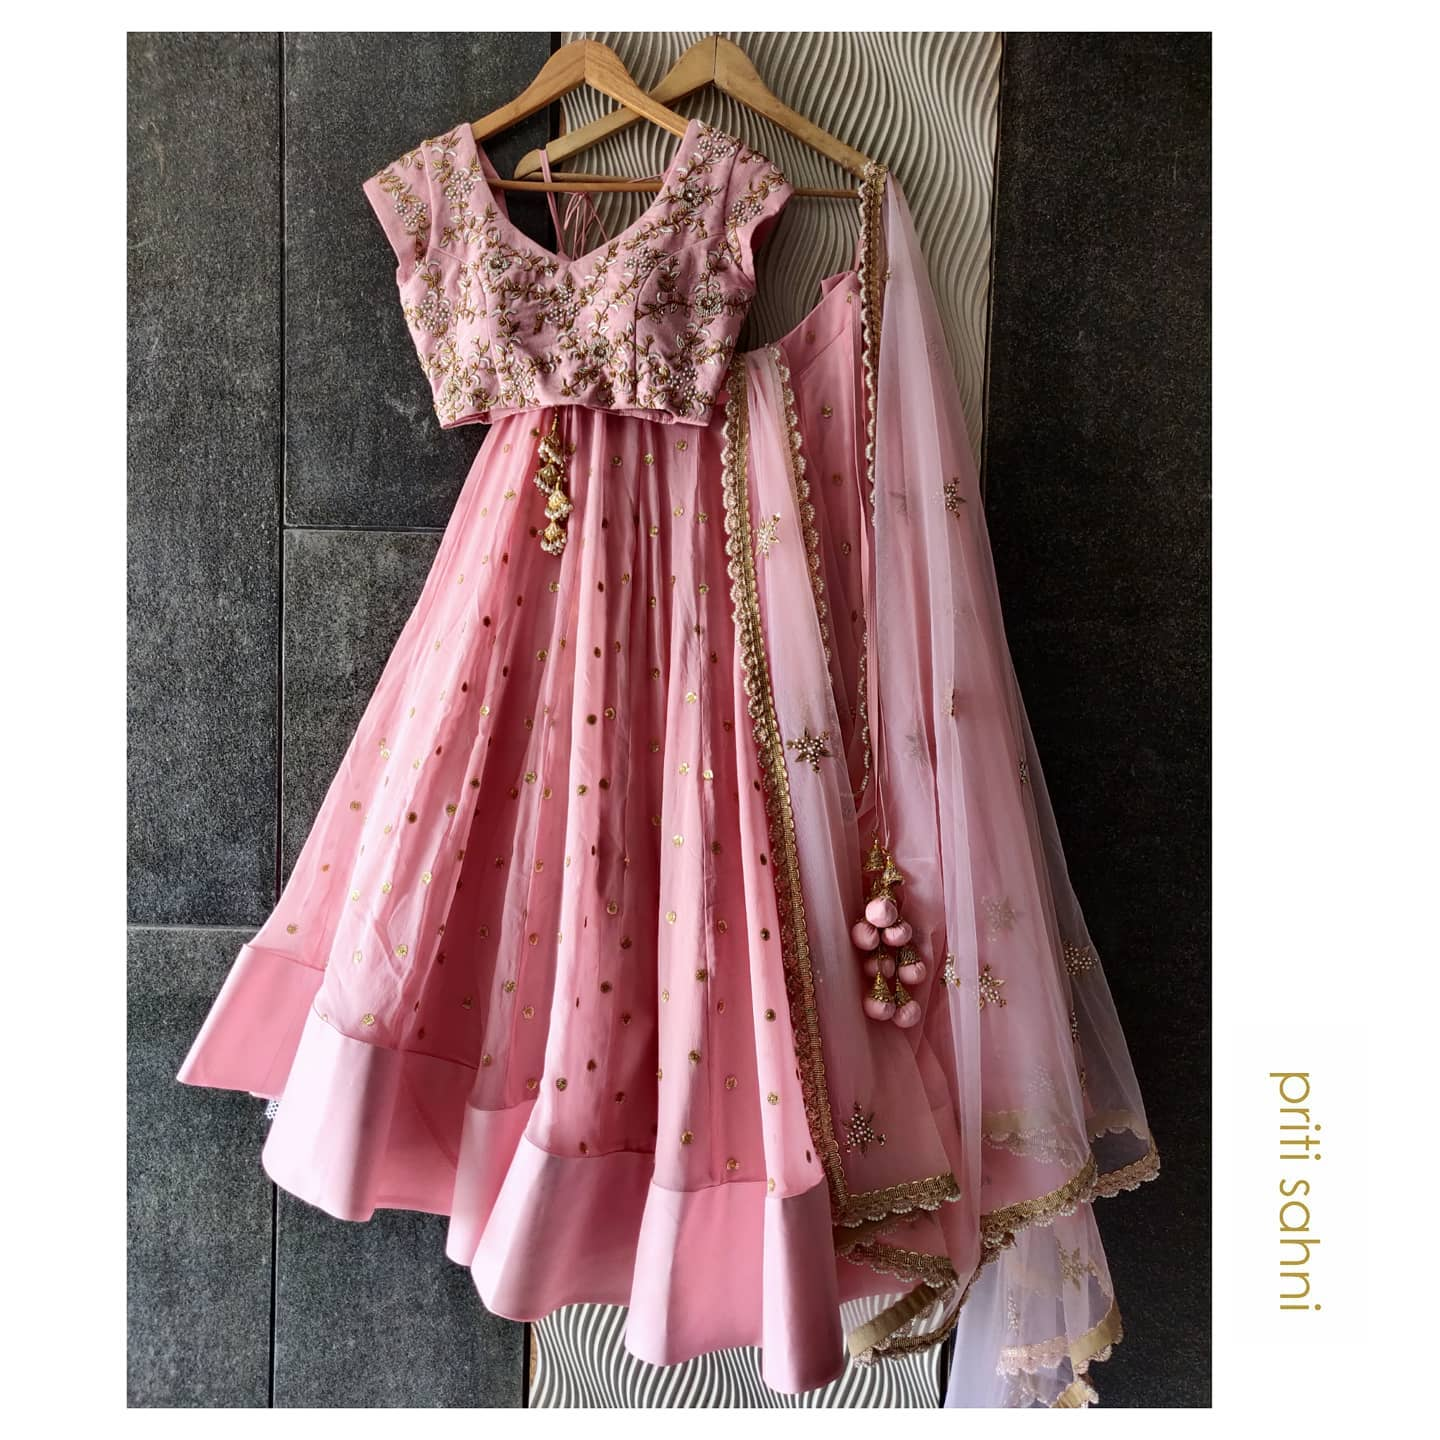 Contempory Traditional.  Rose pink embroidered lehenga set displaying unique blend of traditional and contemporary styling for modern Indian bride.  Rose pink georgette lehenga with sequin buttis all over paired with zardozi pearl hand embroidered blouse and net dupatta with scalloped zardozi and pearl with detailing  To get your dream outfit designed DM or Whatsapp on +91-9022617481  | wedding lehenga design | lacha | dulhan ghagra | 2020-12-07